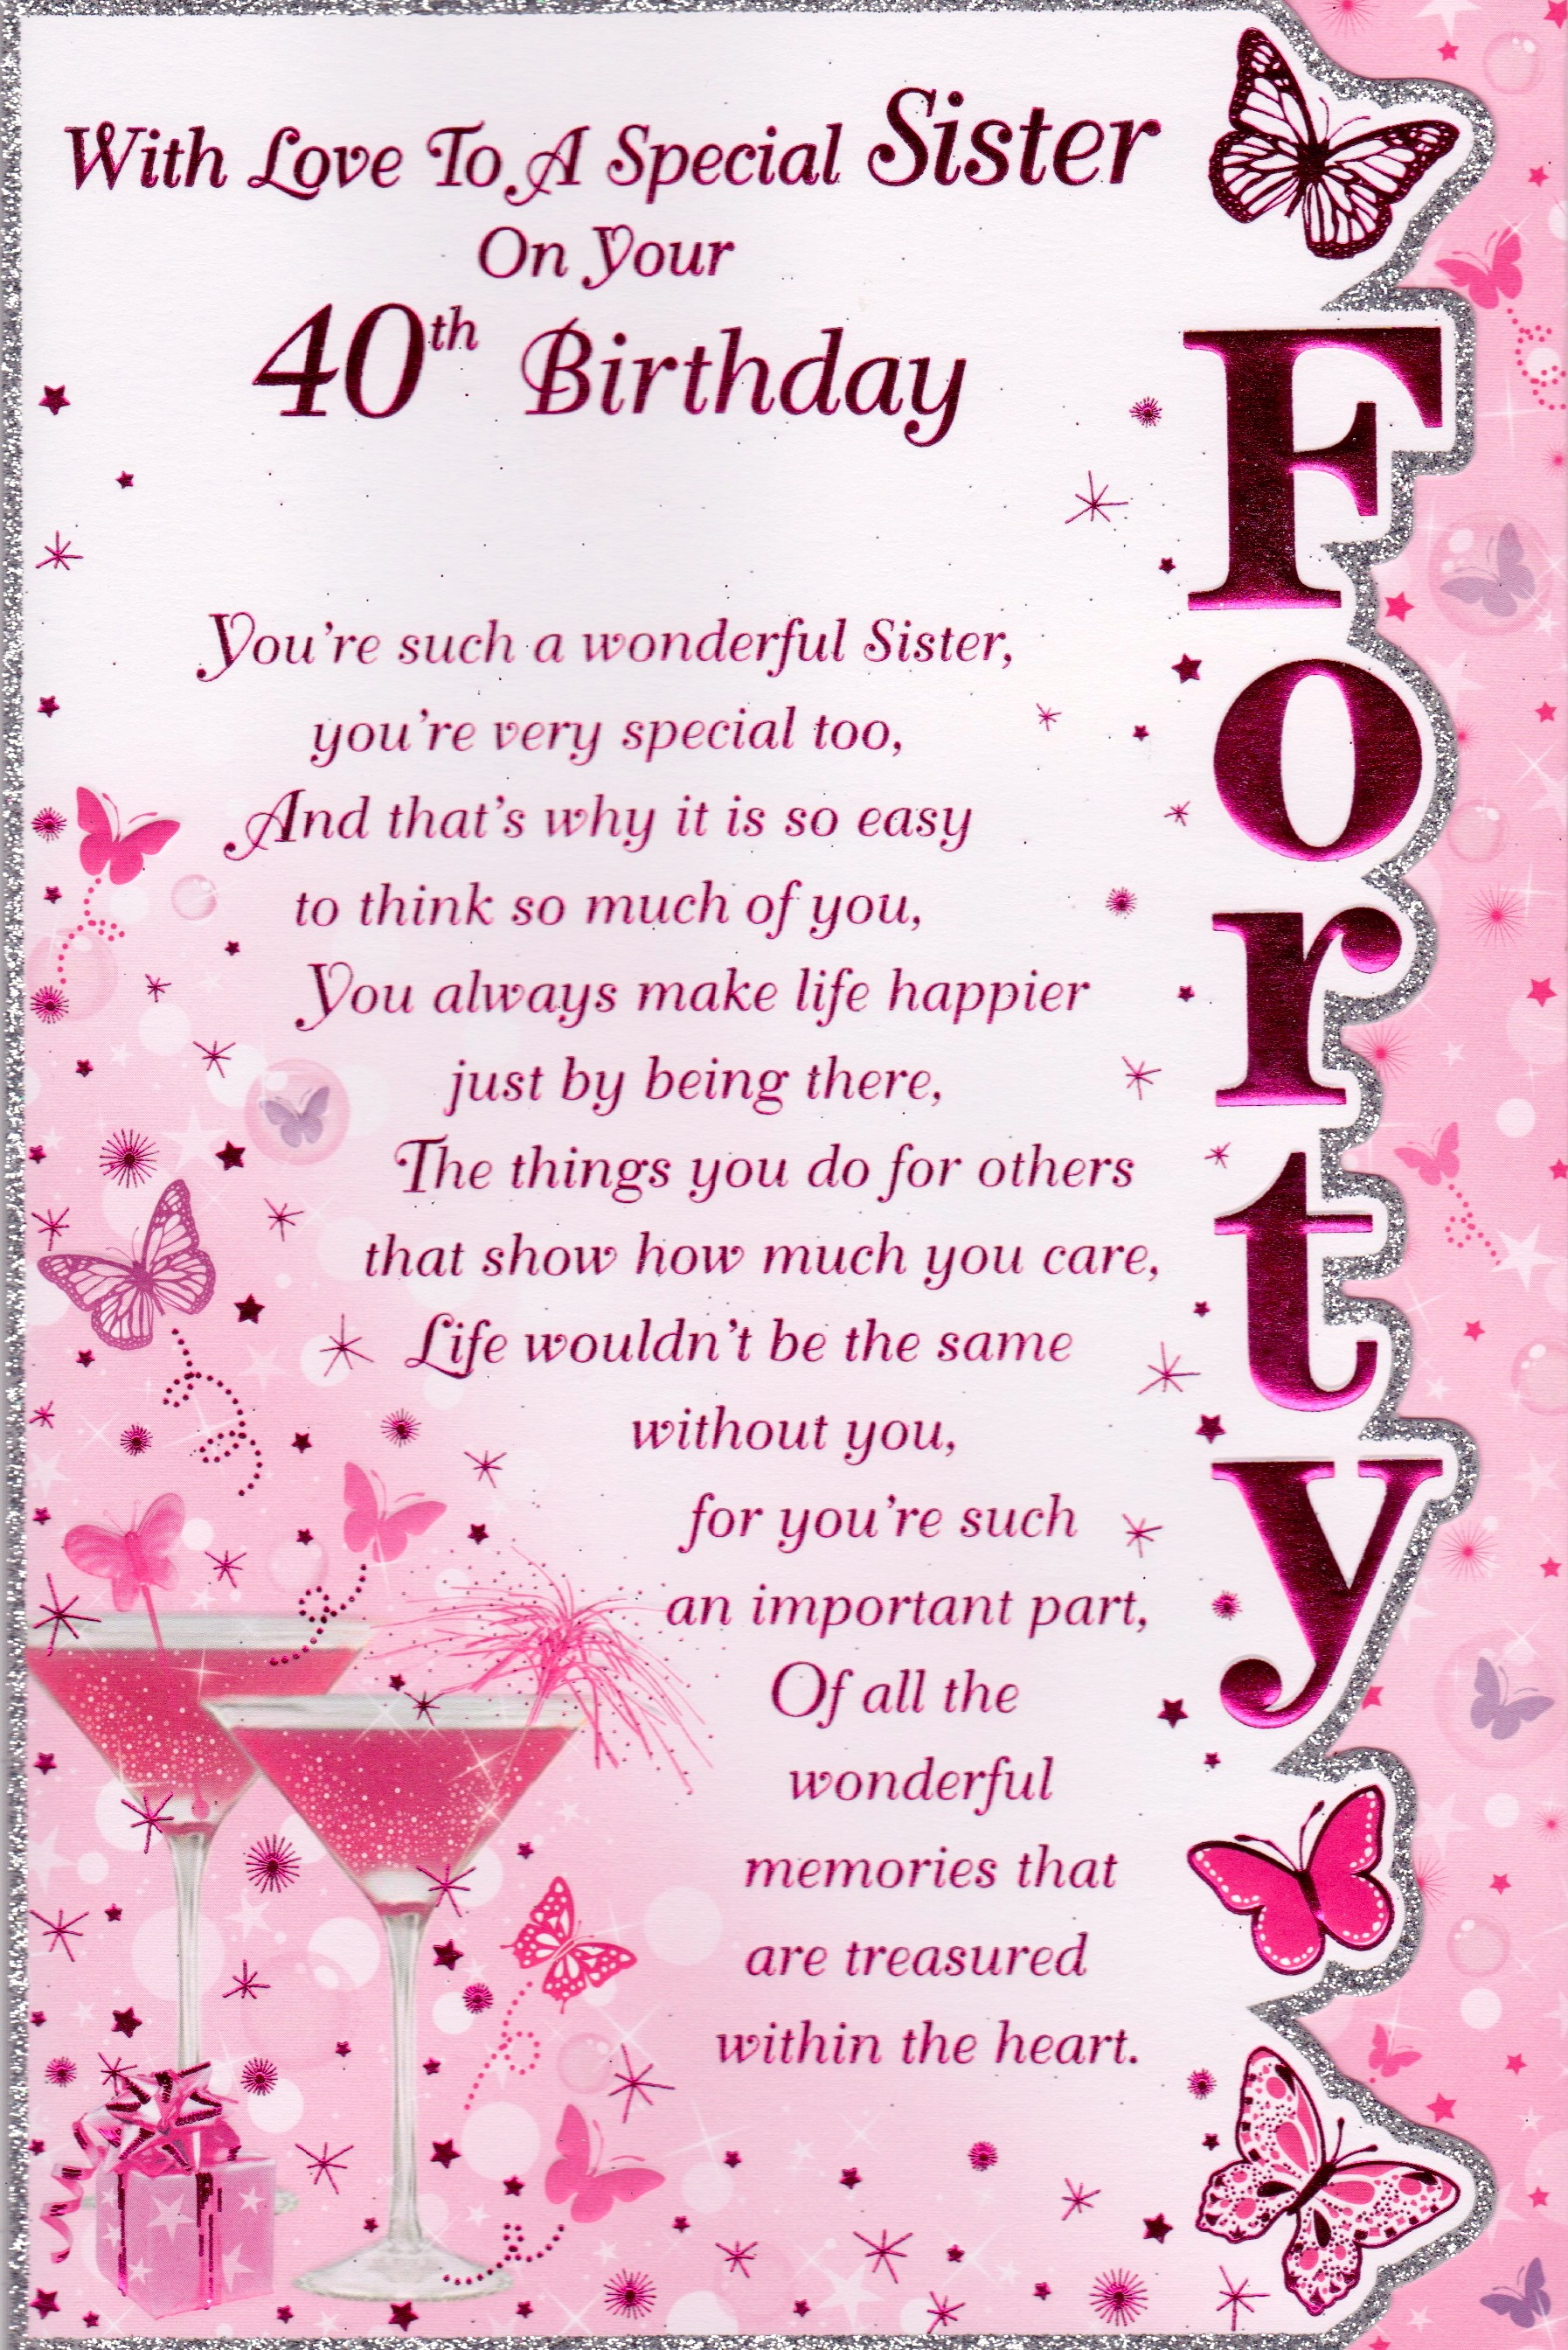 Birthday Wishes Poem For Sister In Law Poemdocor